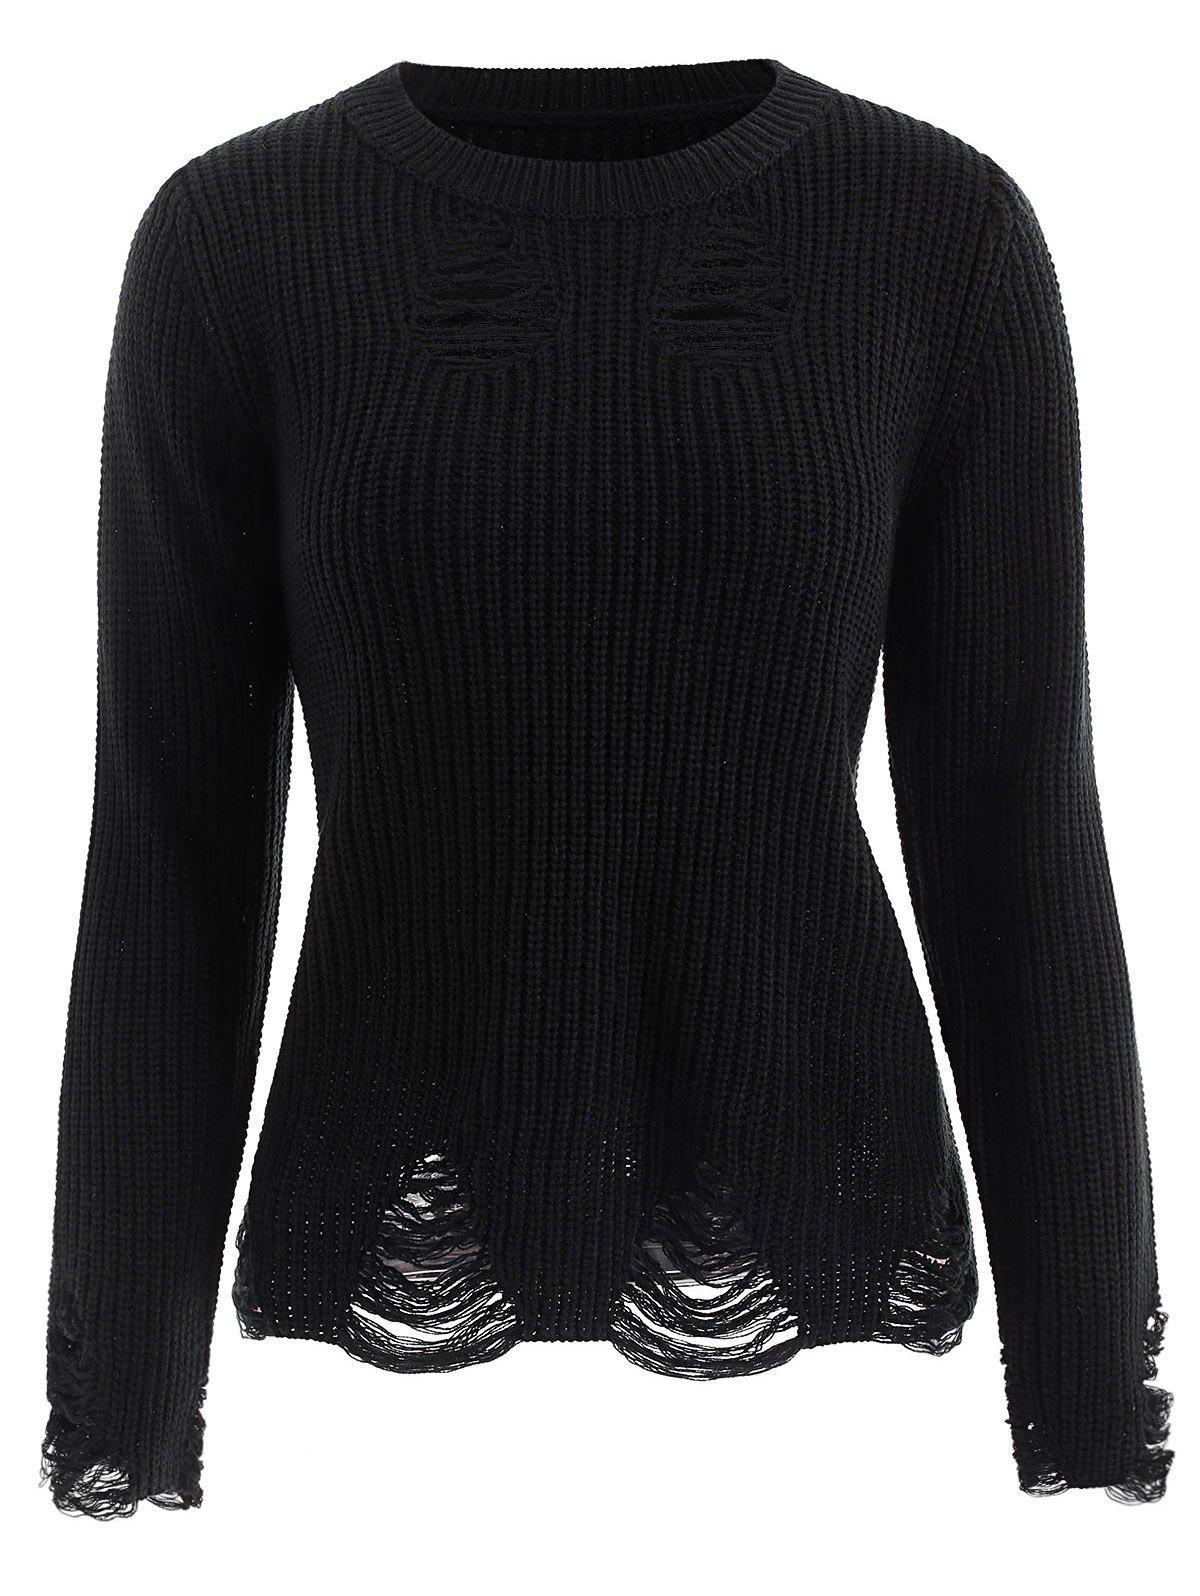 Discount Ribbed Distressed Sweater